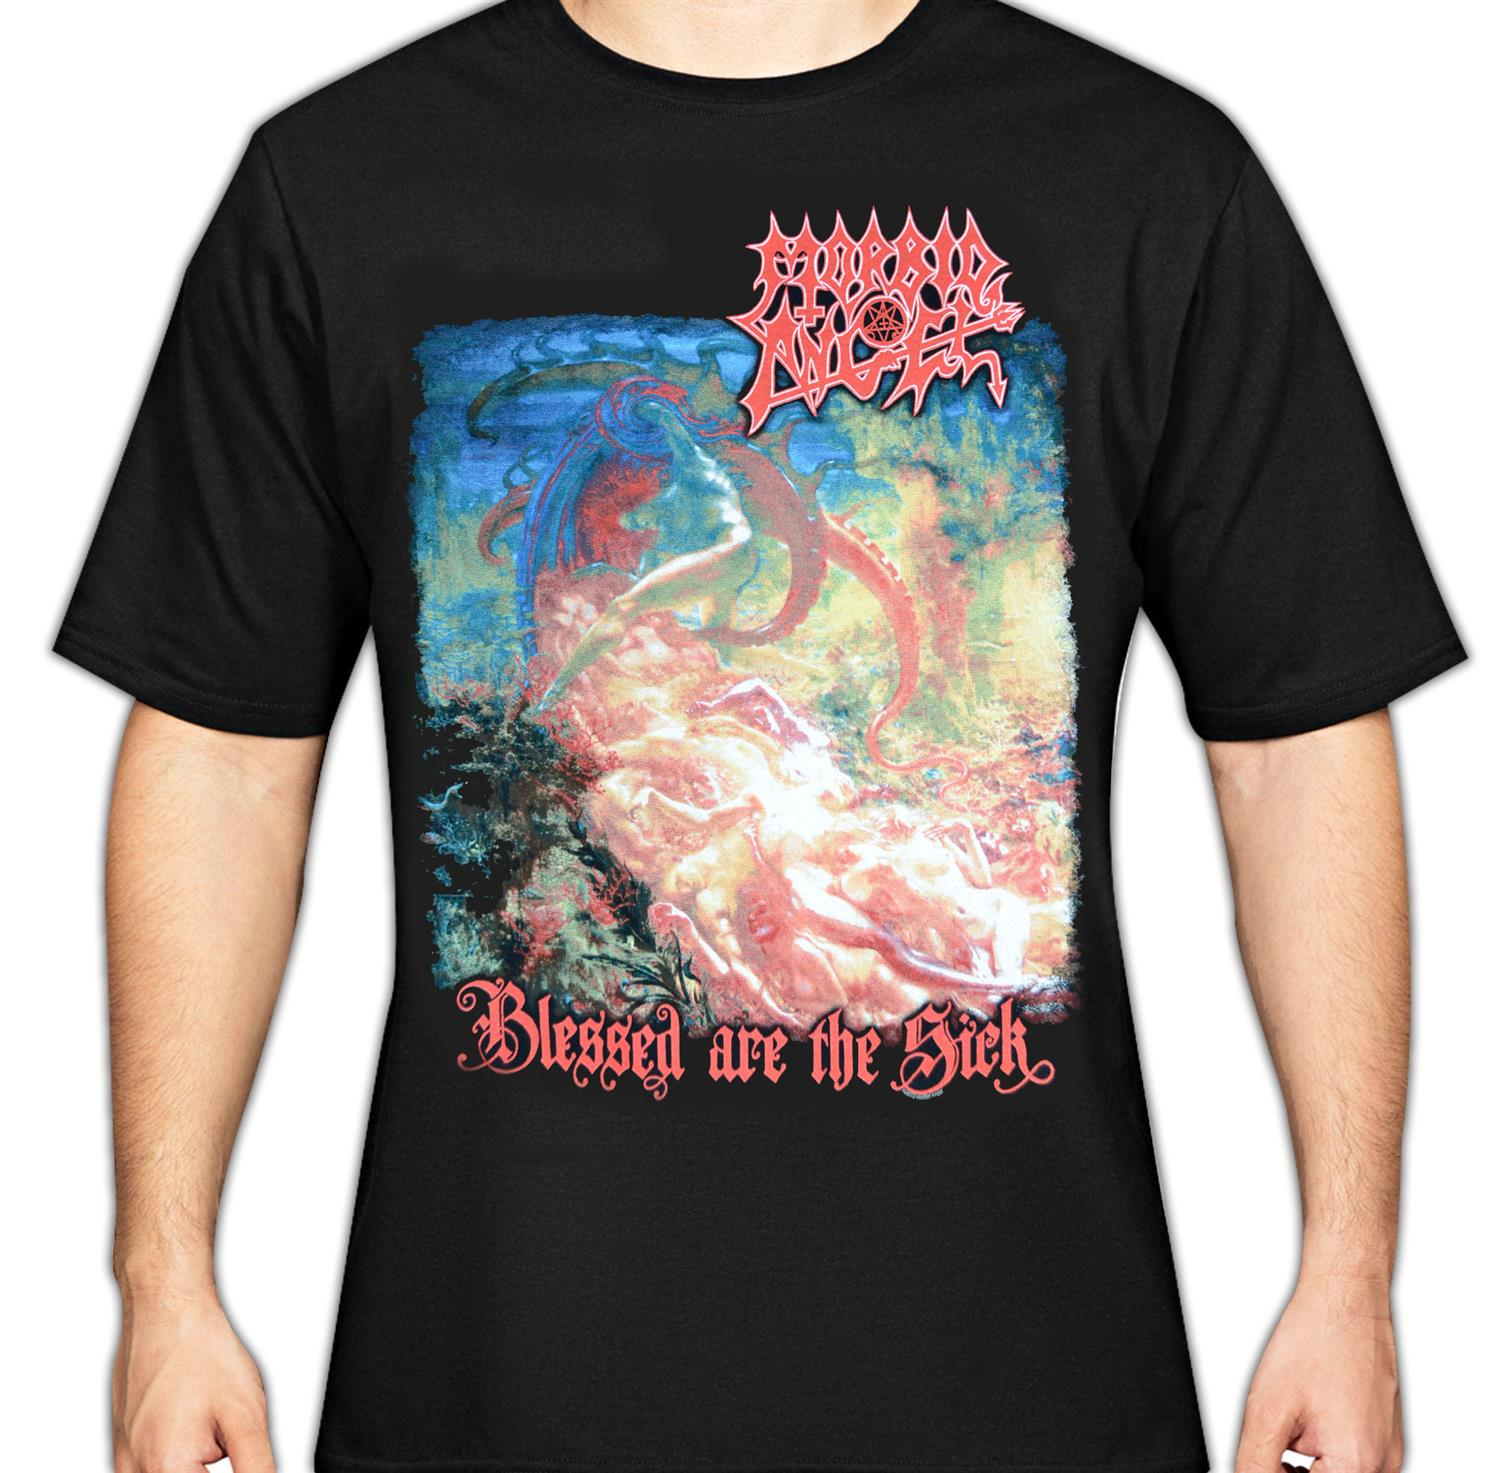 Blessed are the Sick (Import) T-Shirt